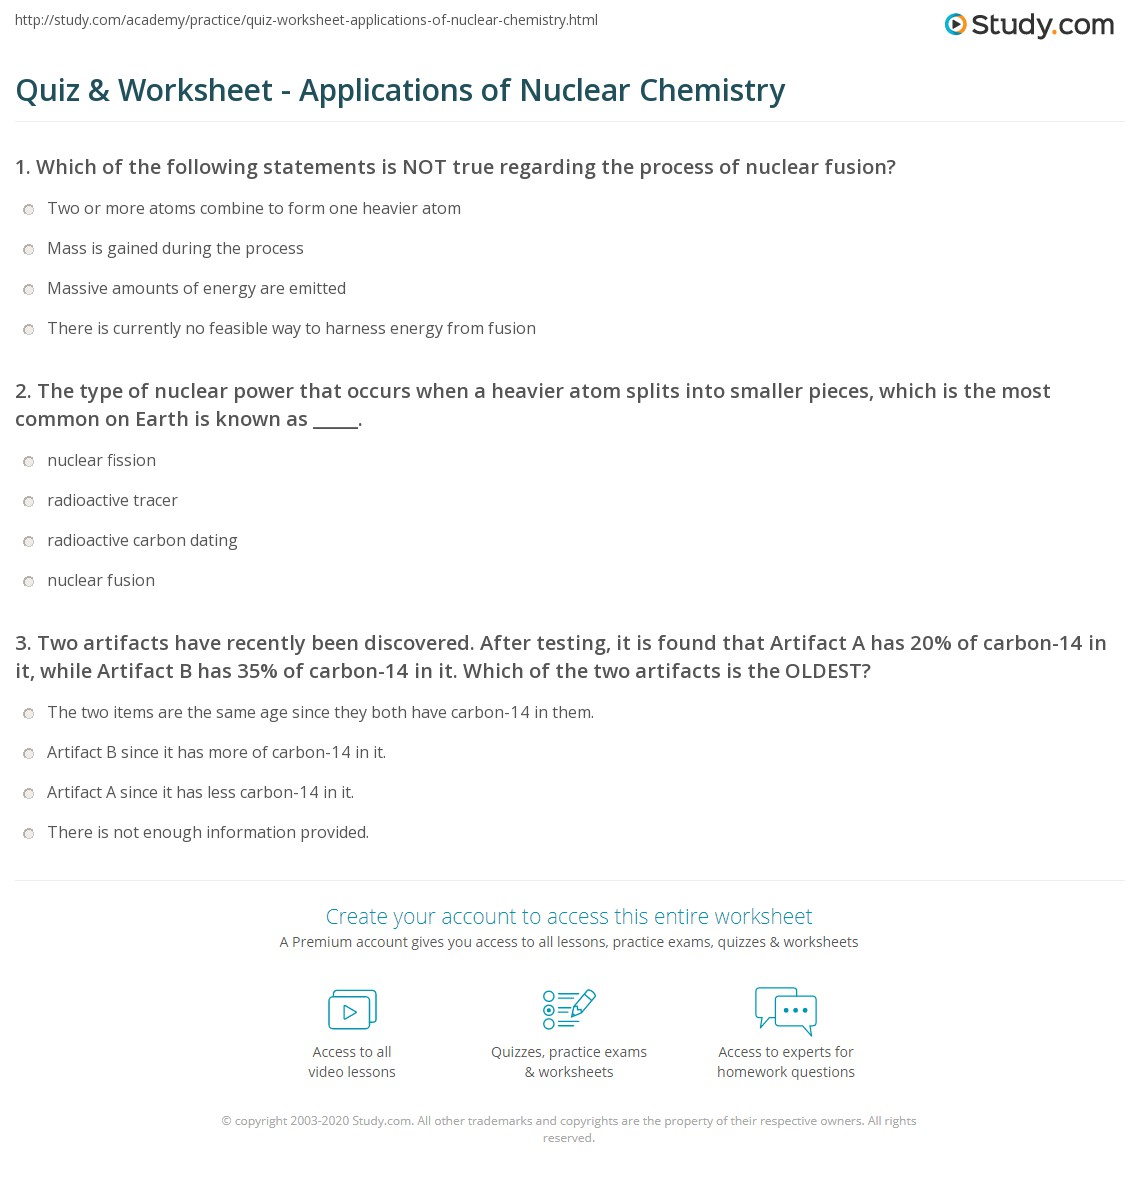 Worksheet Nuclear Chemistry Worksheet quiz worksheet applications of nuclear chemistry study com print fusion fission carbon dating tracers imaging worksheet